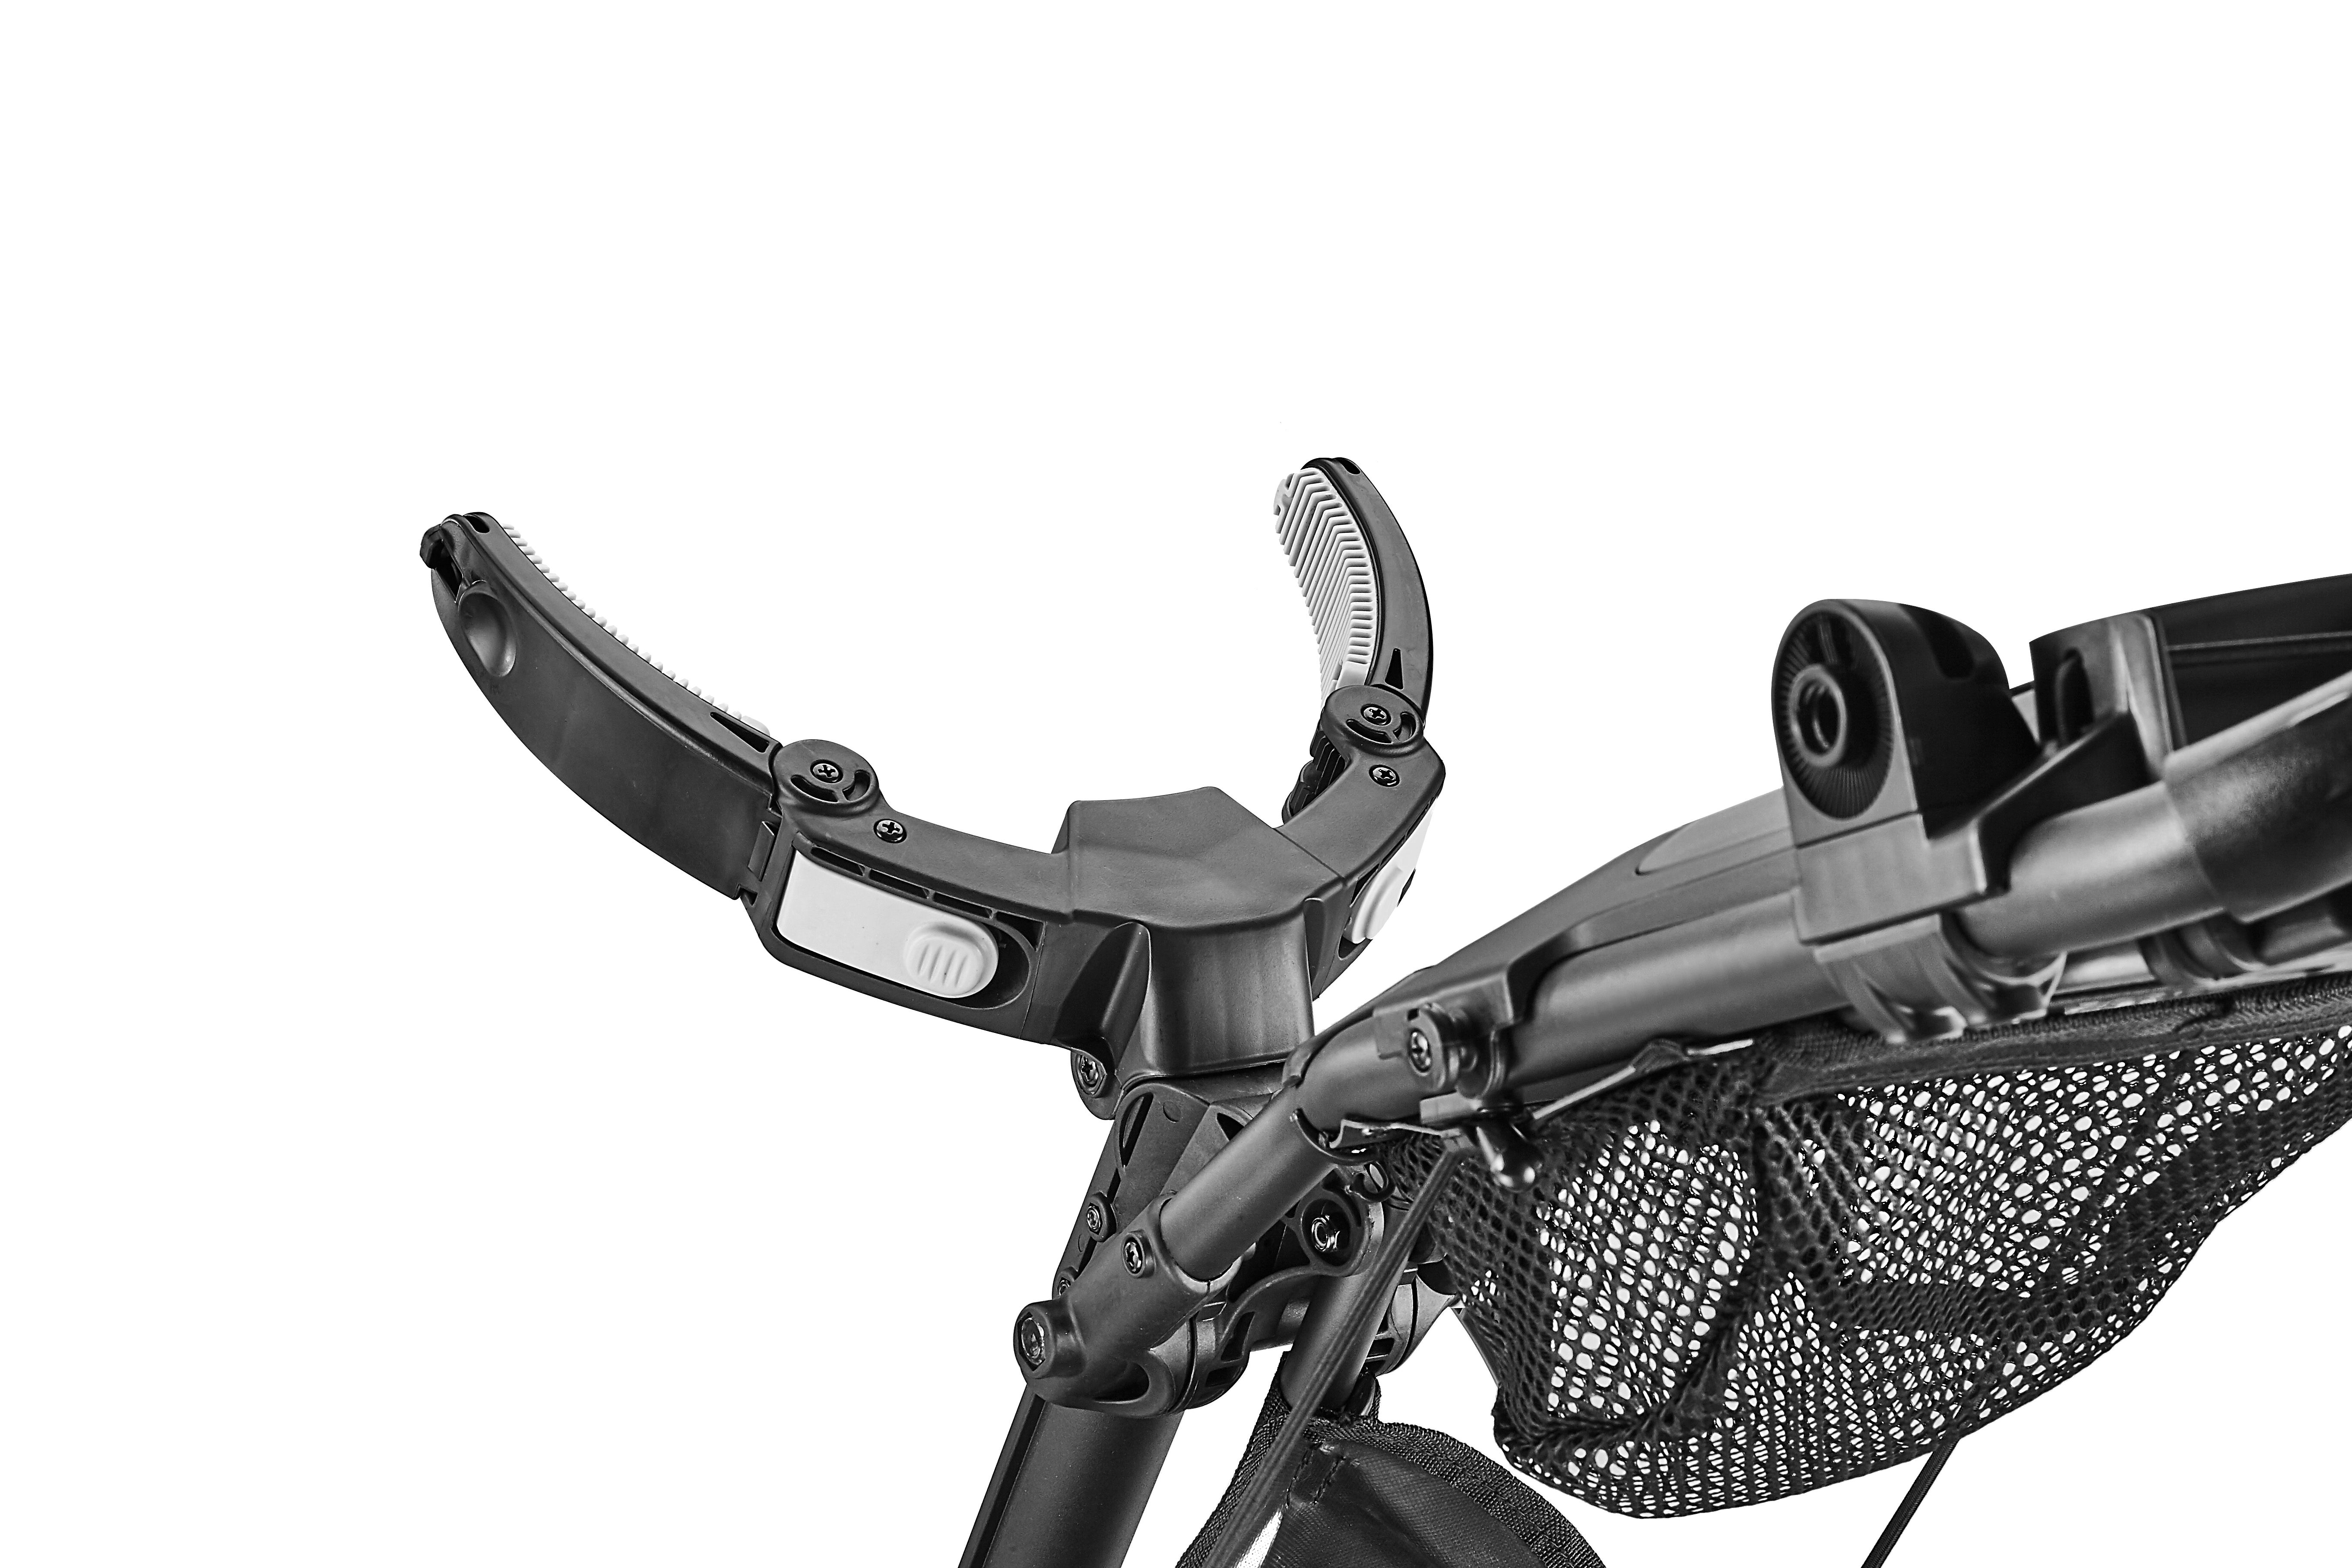 Clamp style bag holder secure all types and sizes of golf bag easily